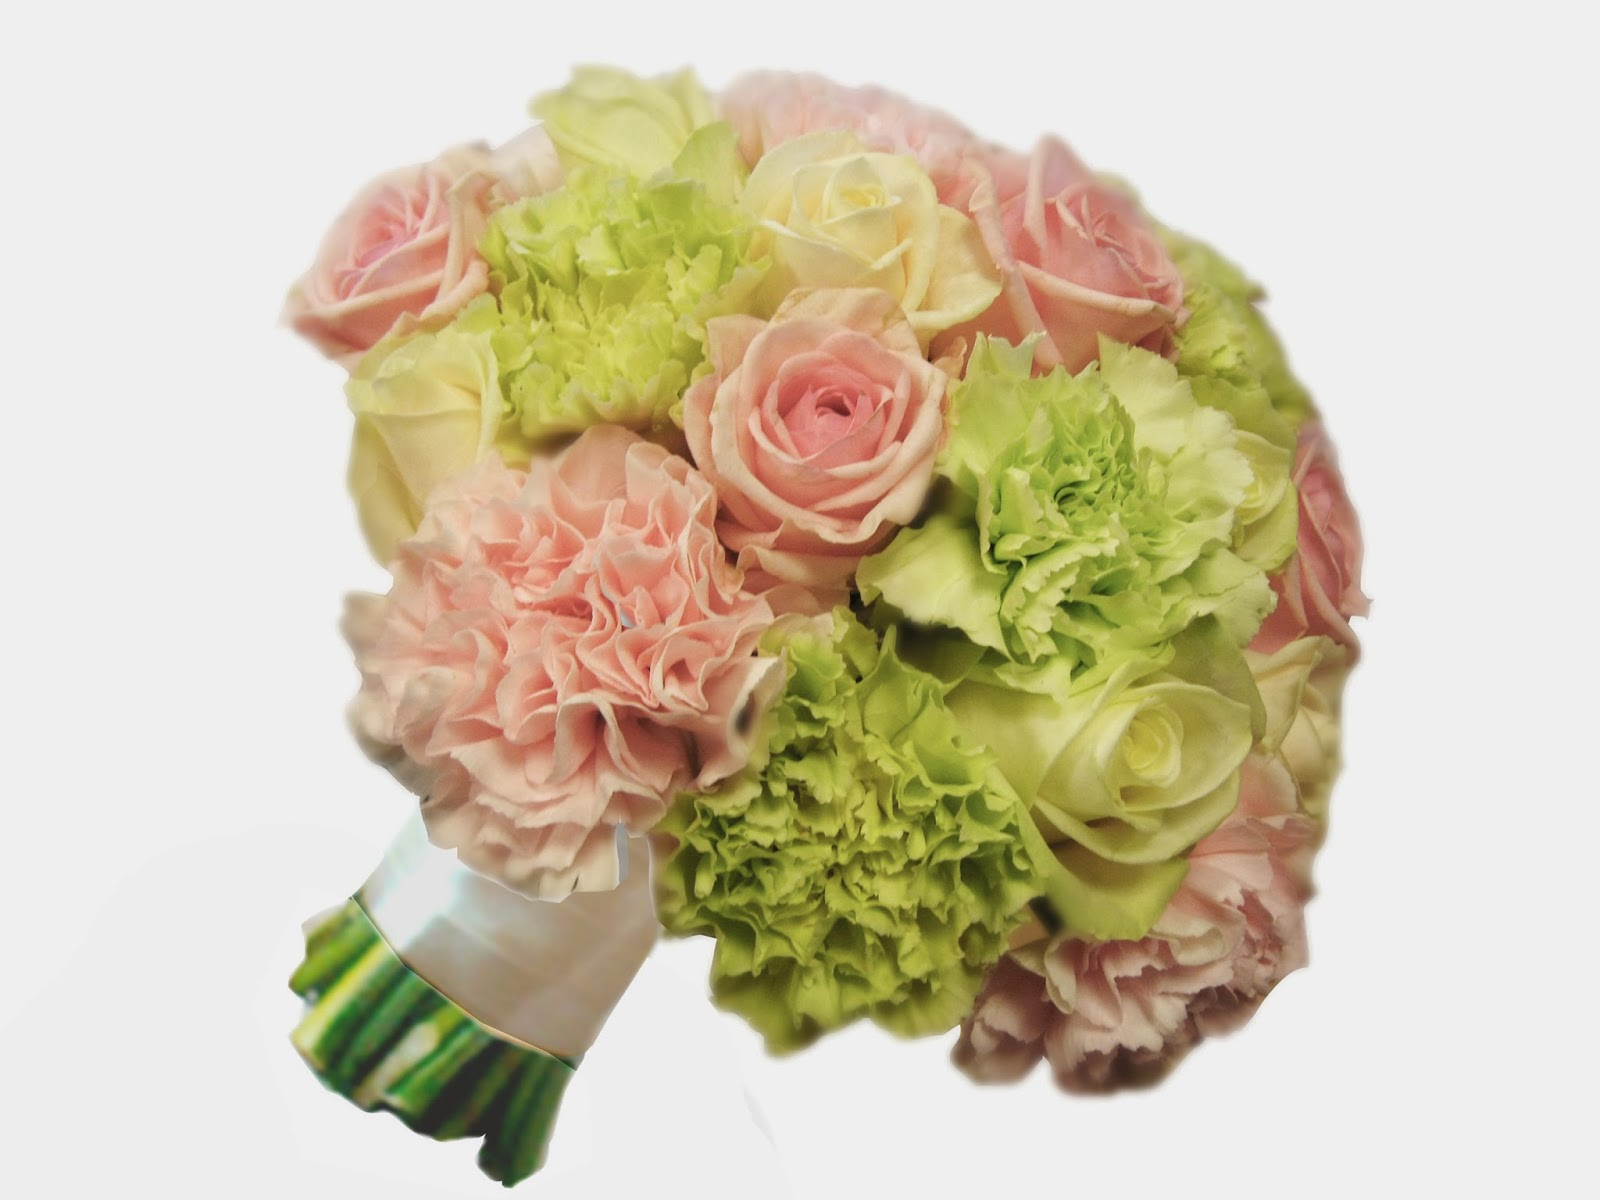 Wedding Flowers Bouquet Png 2014 Fresh Flowers